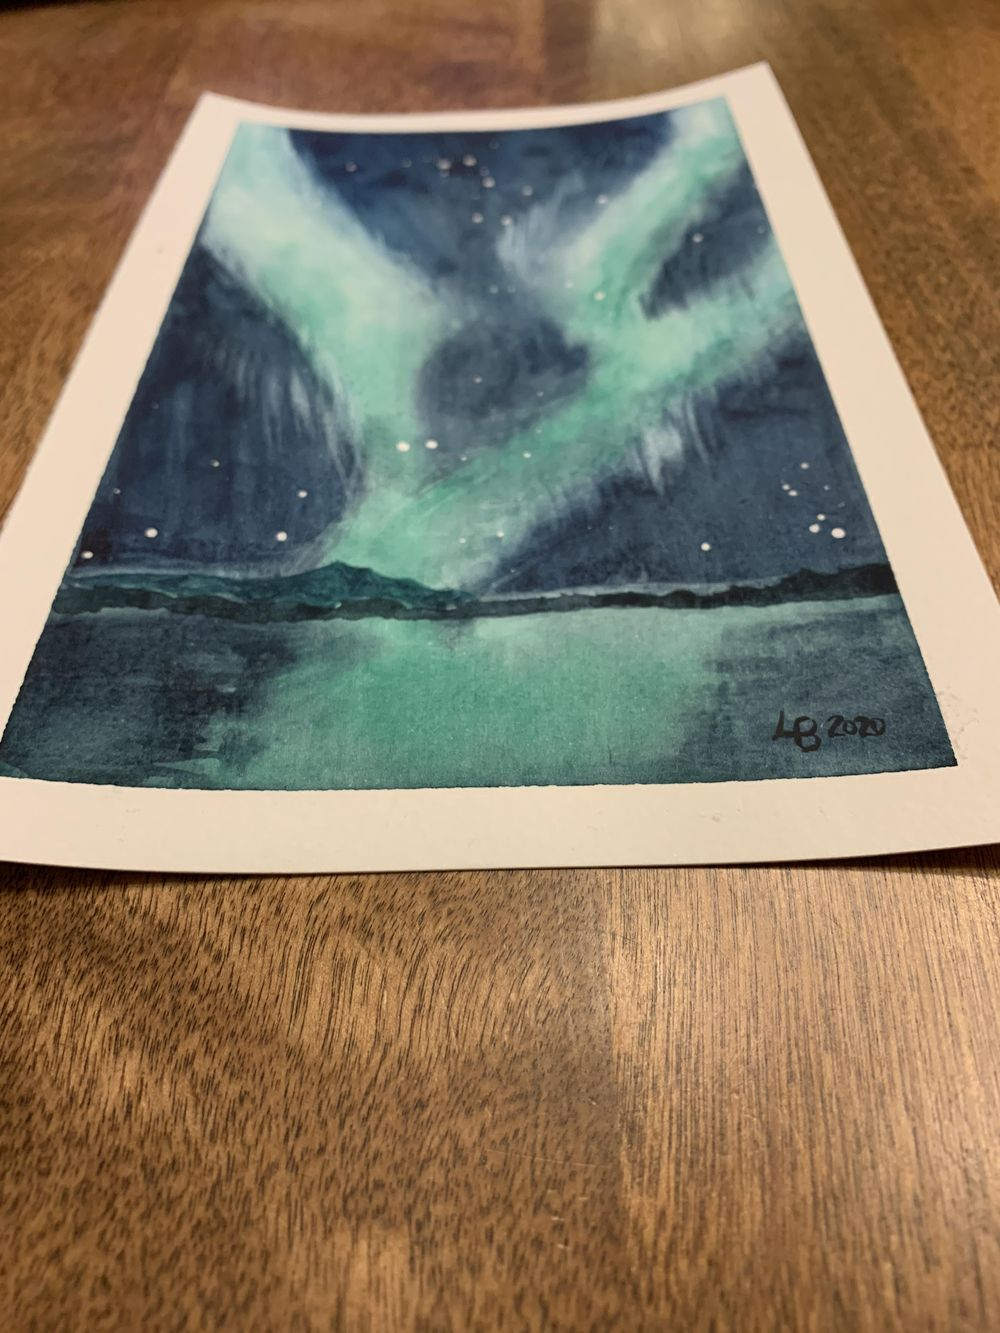 Northern Lights - image 1 - student project